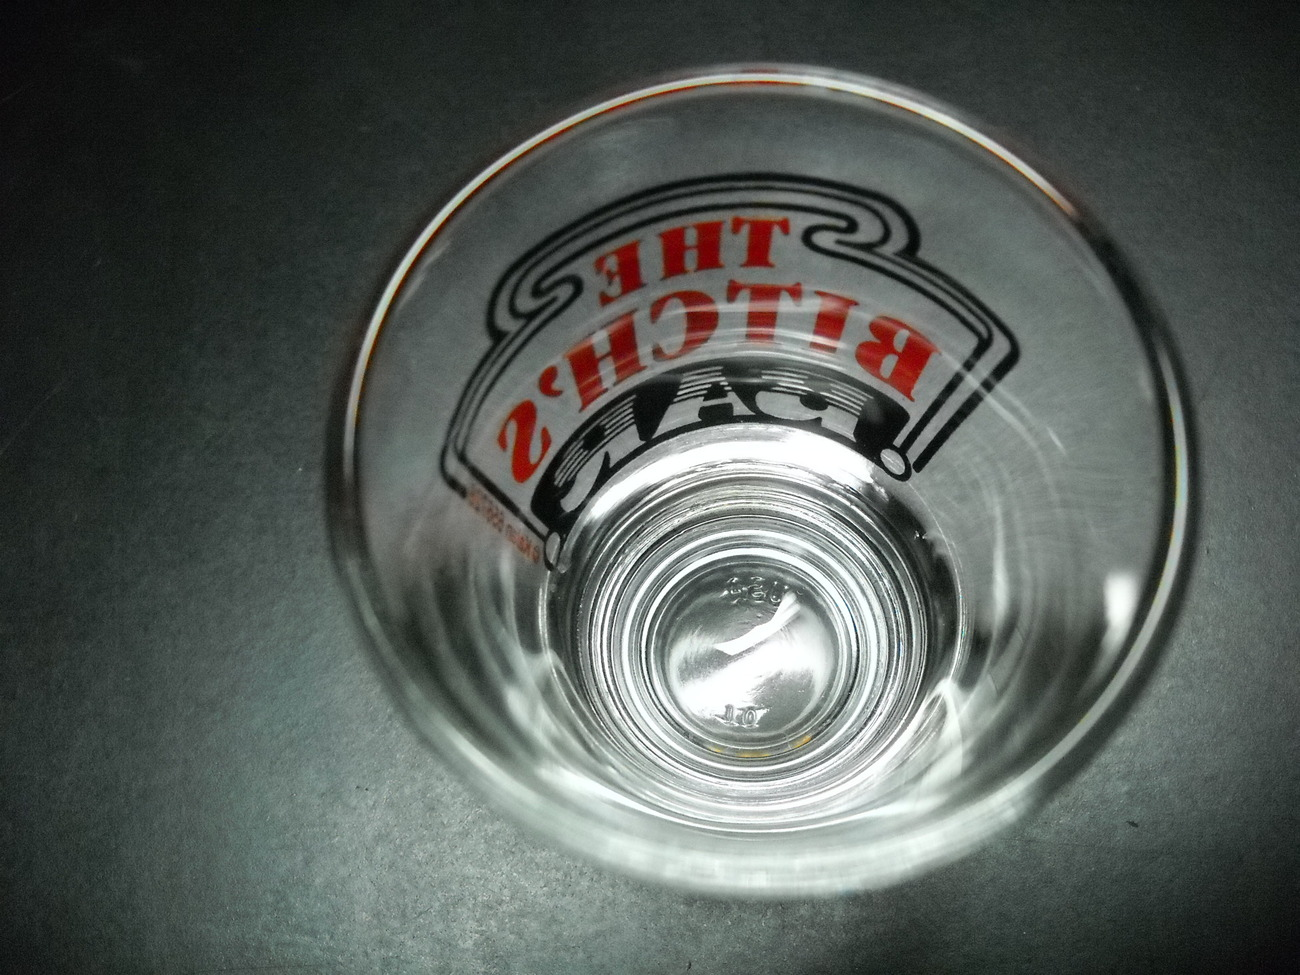 The Bitch's Bar Shot Glass Red and Black Illustration and Print on Clear Glass